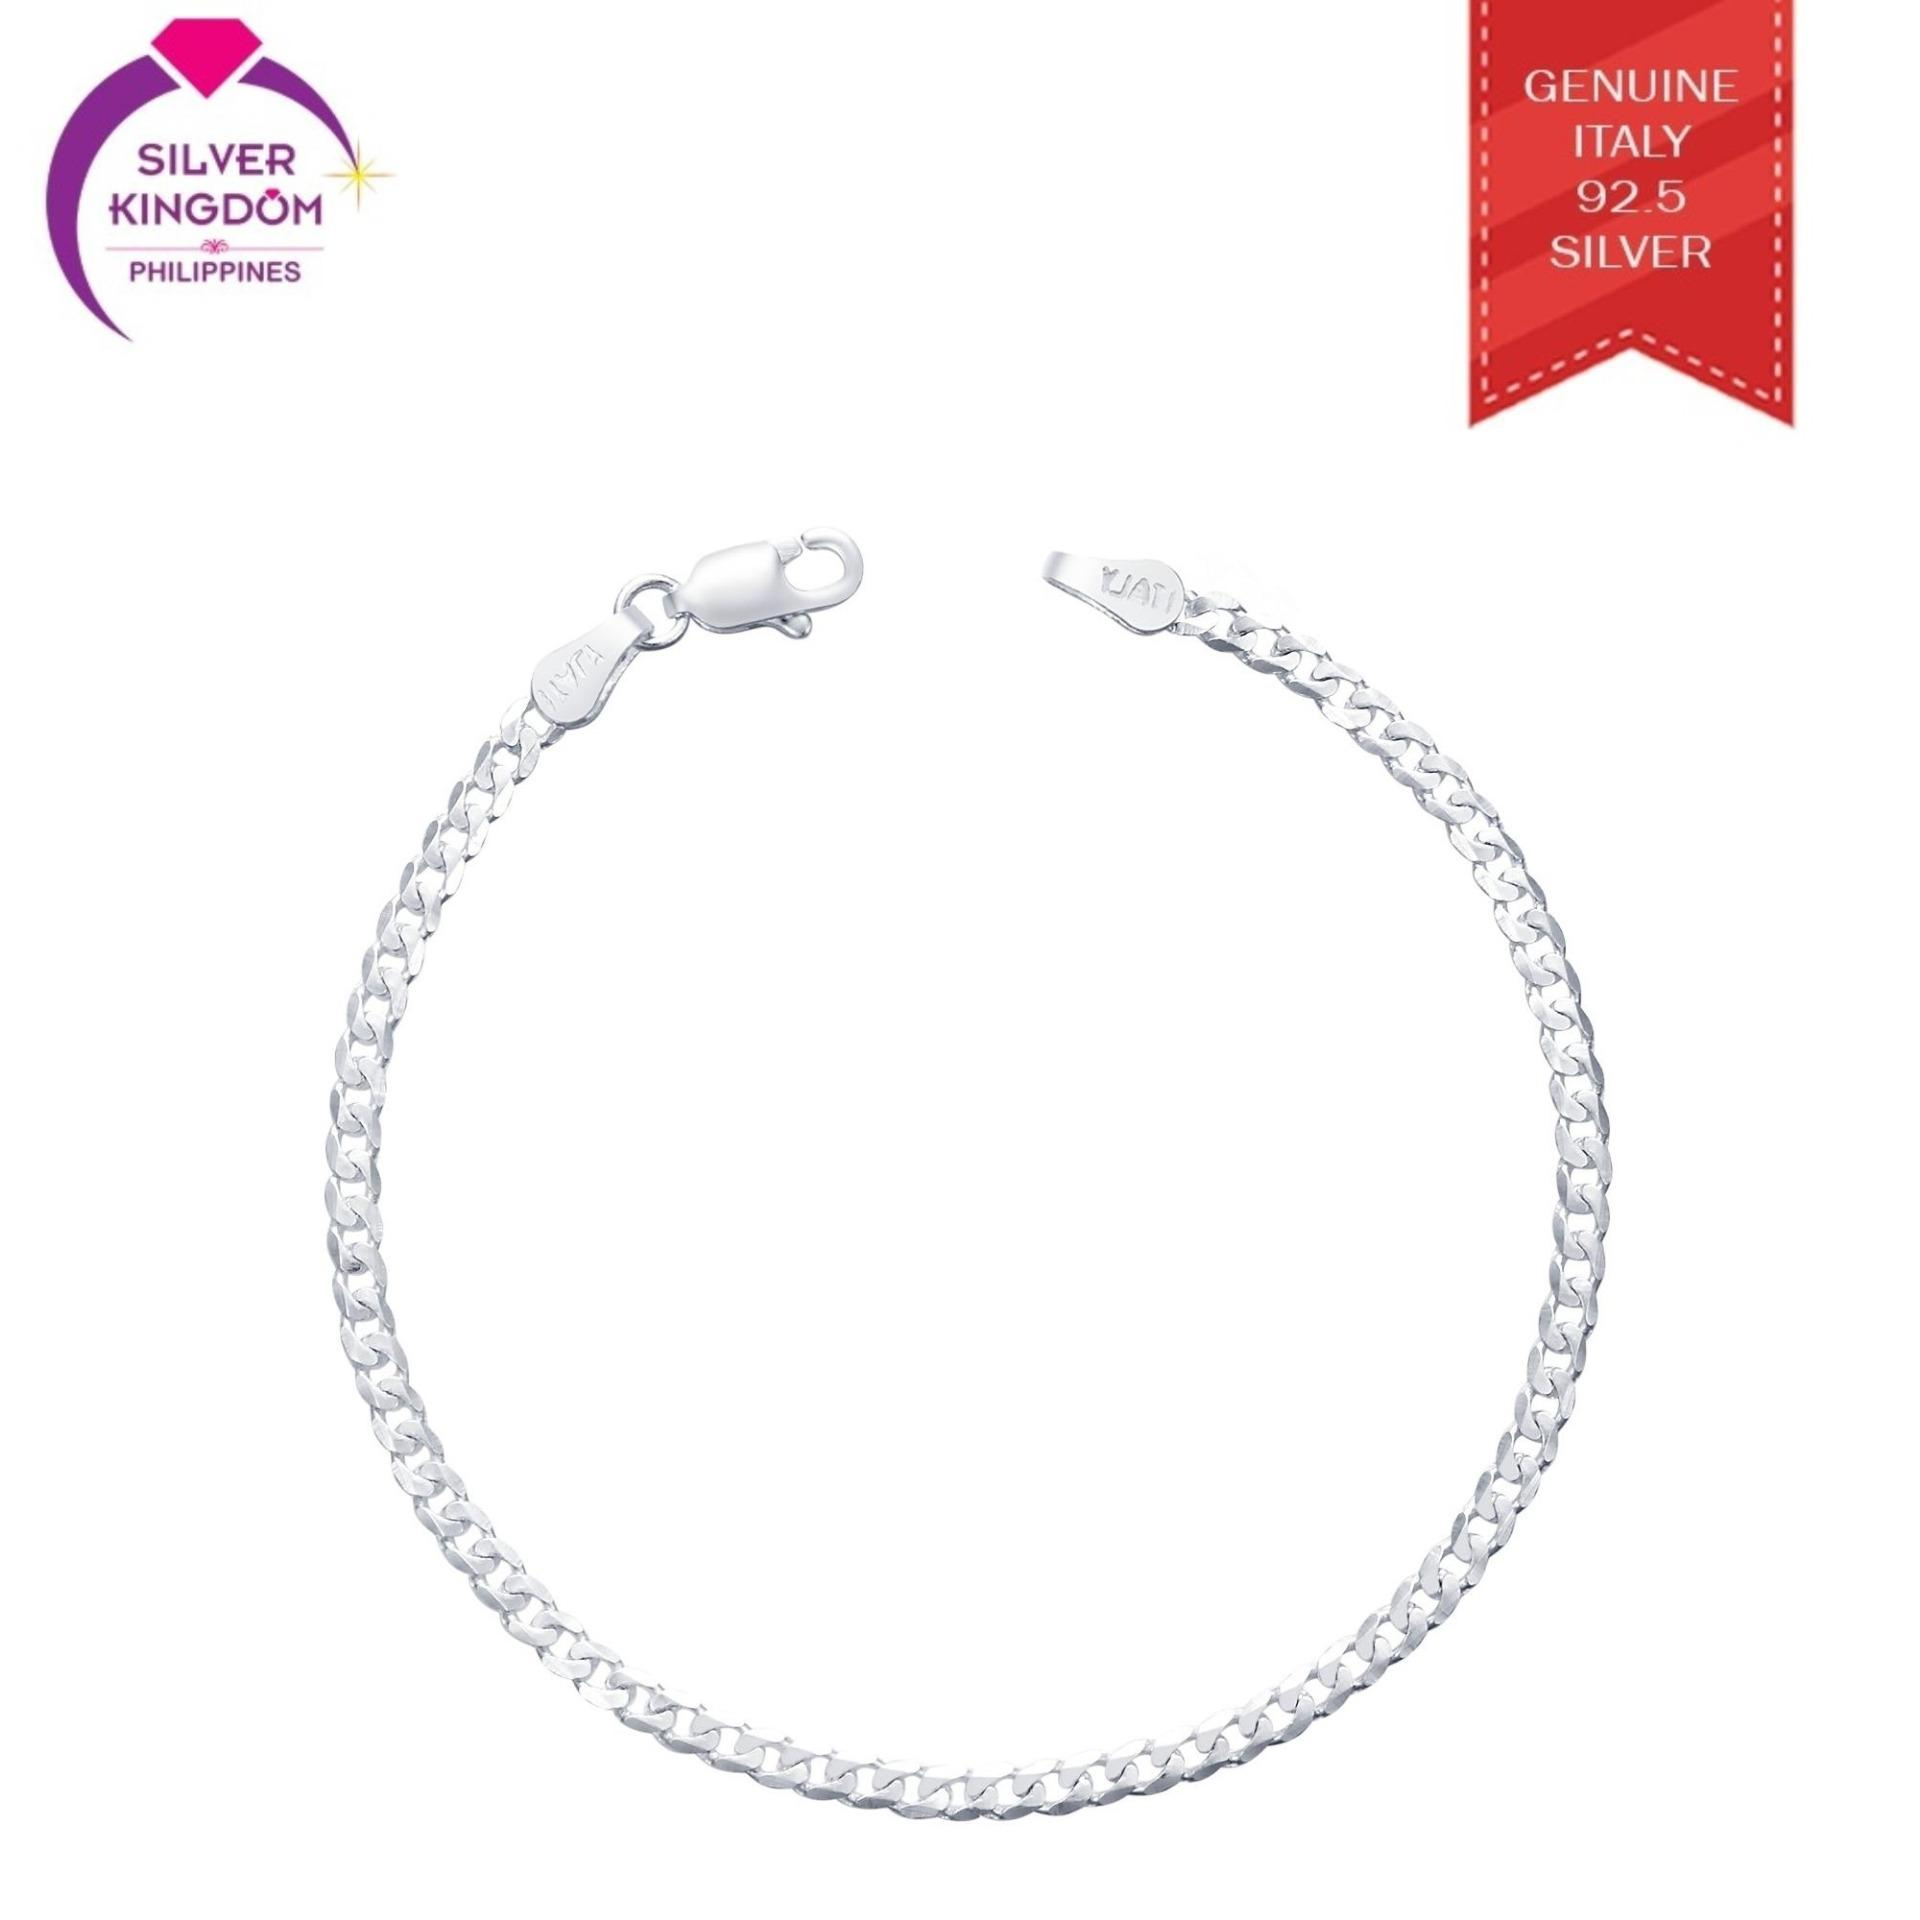 Silver Kingdom 92.5 Italy Silver Kb37 Bracelet For Kids By Silver Kingdom Philippines.